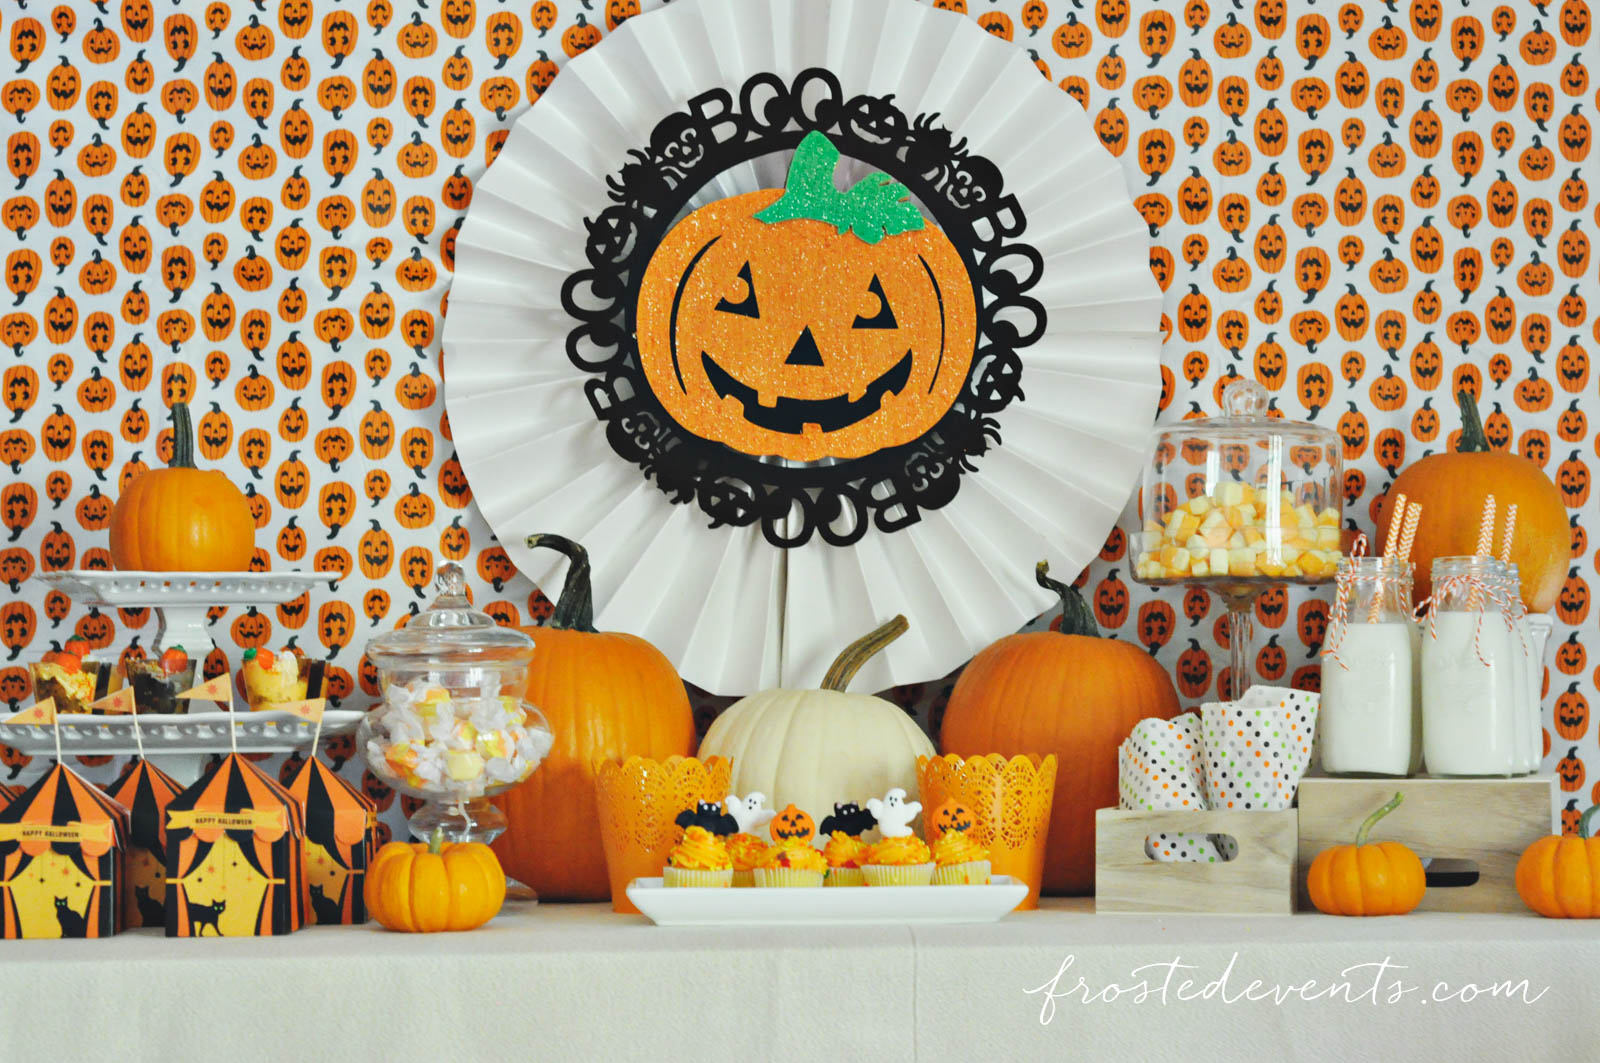 Halloween Party for Kids - Pumpkin Party ideas, halloween party treats, halloween desserts and more fun Halloween ideas via mom blogger Misty Nelson @frostedevents Halloween dessert table Pumpkin theme orange